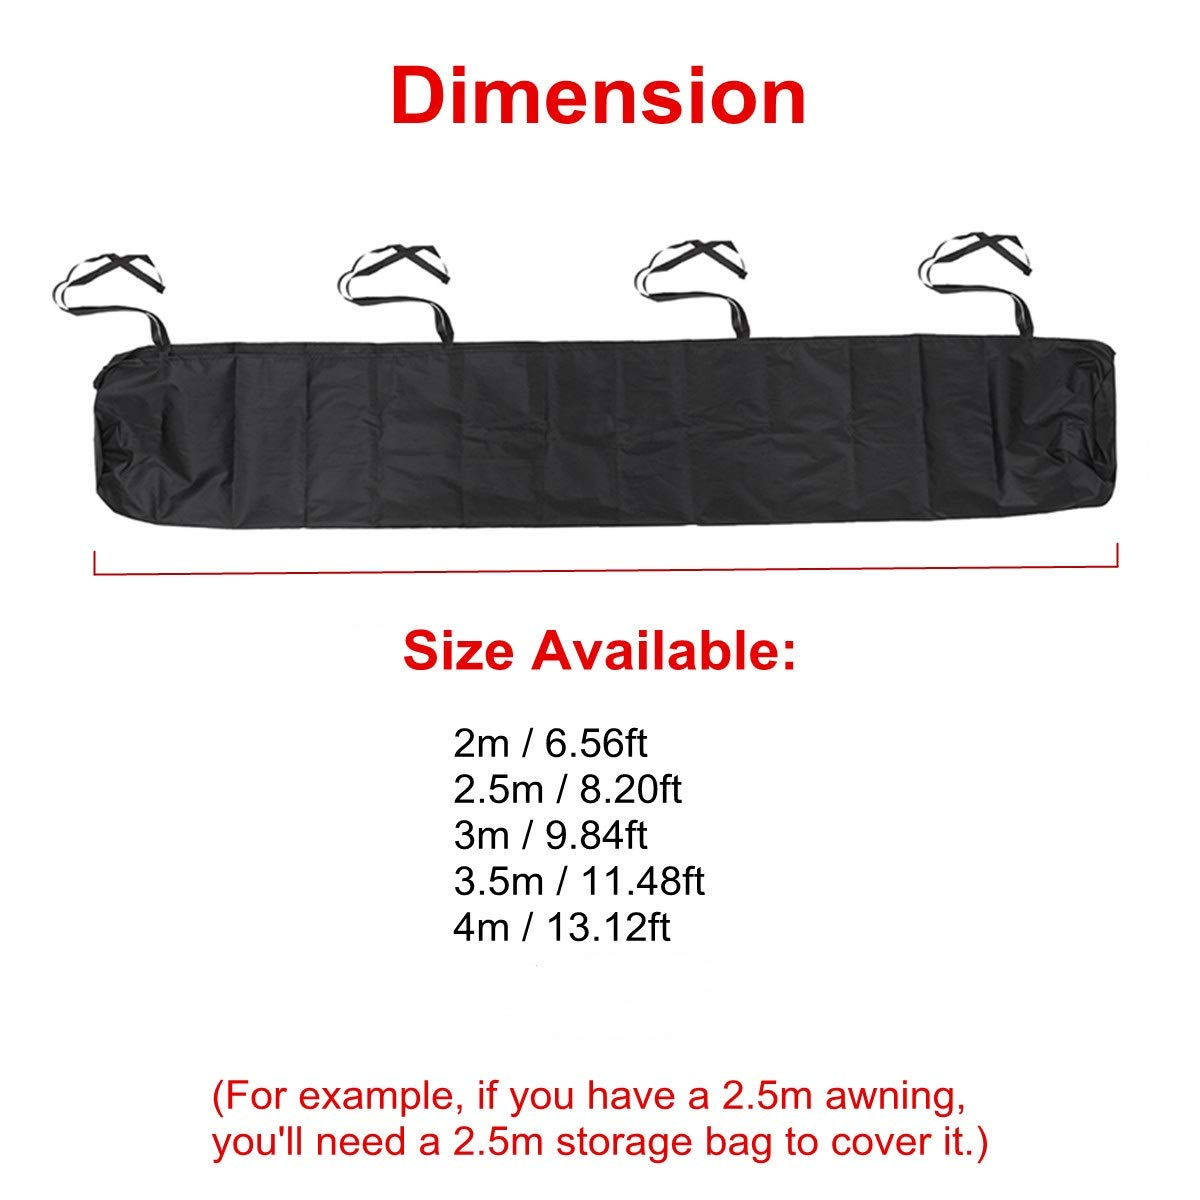 Black Protective Awning Cover Storage Bag with String for Outdoor Garden Sun Protection Waterproof Rain Snow 2m//6.56ft